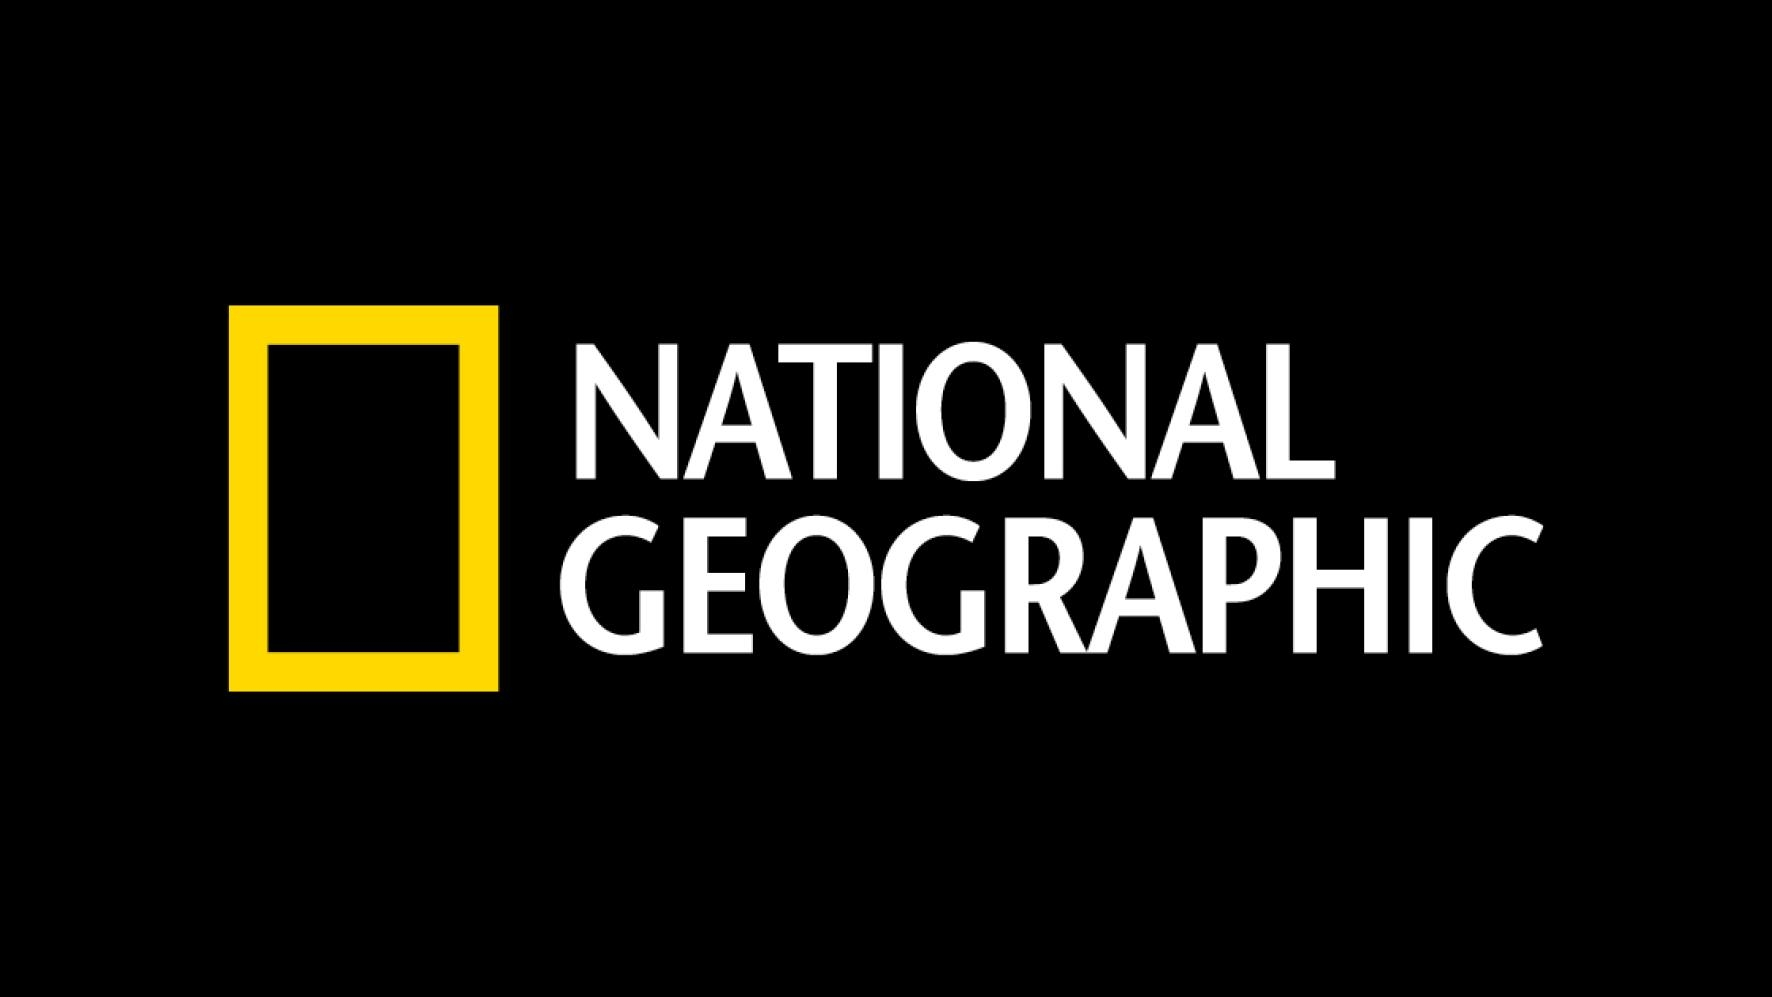 national-geographic.ngsversion.1475151192637.adapt.1900.1.jpg